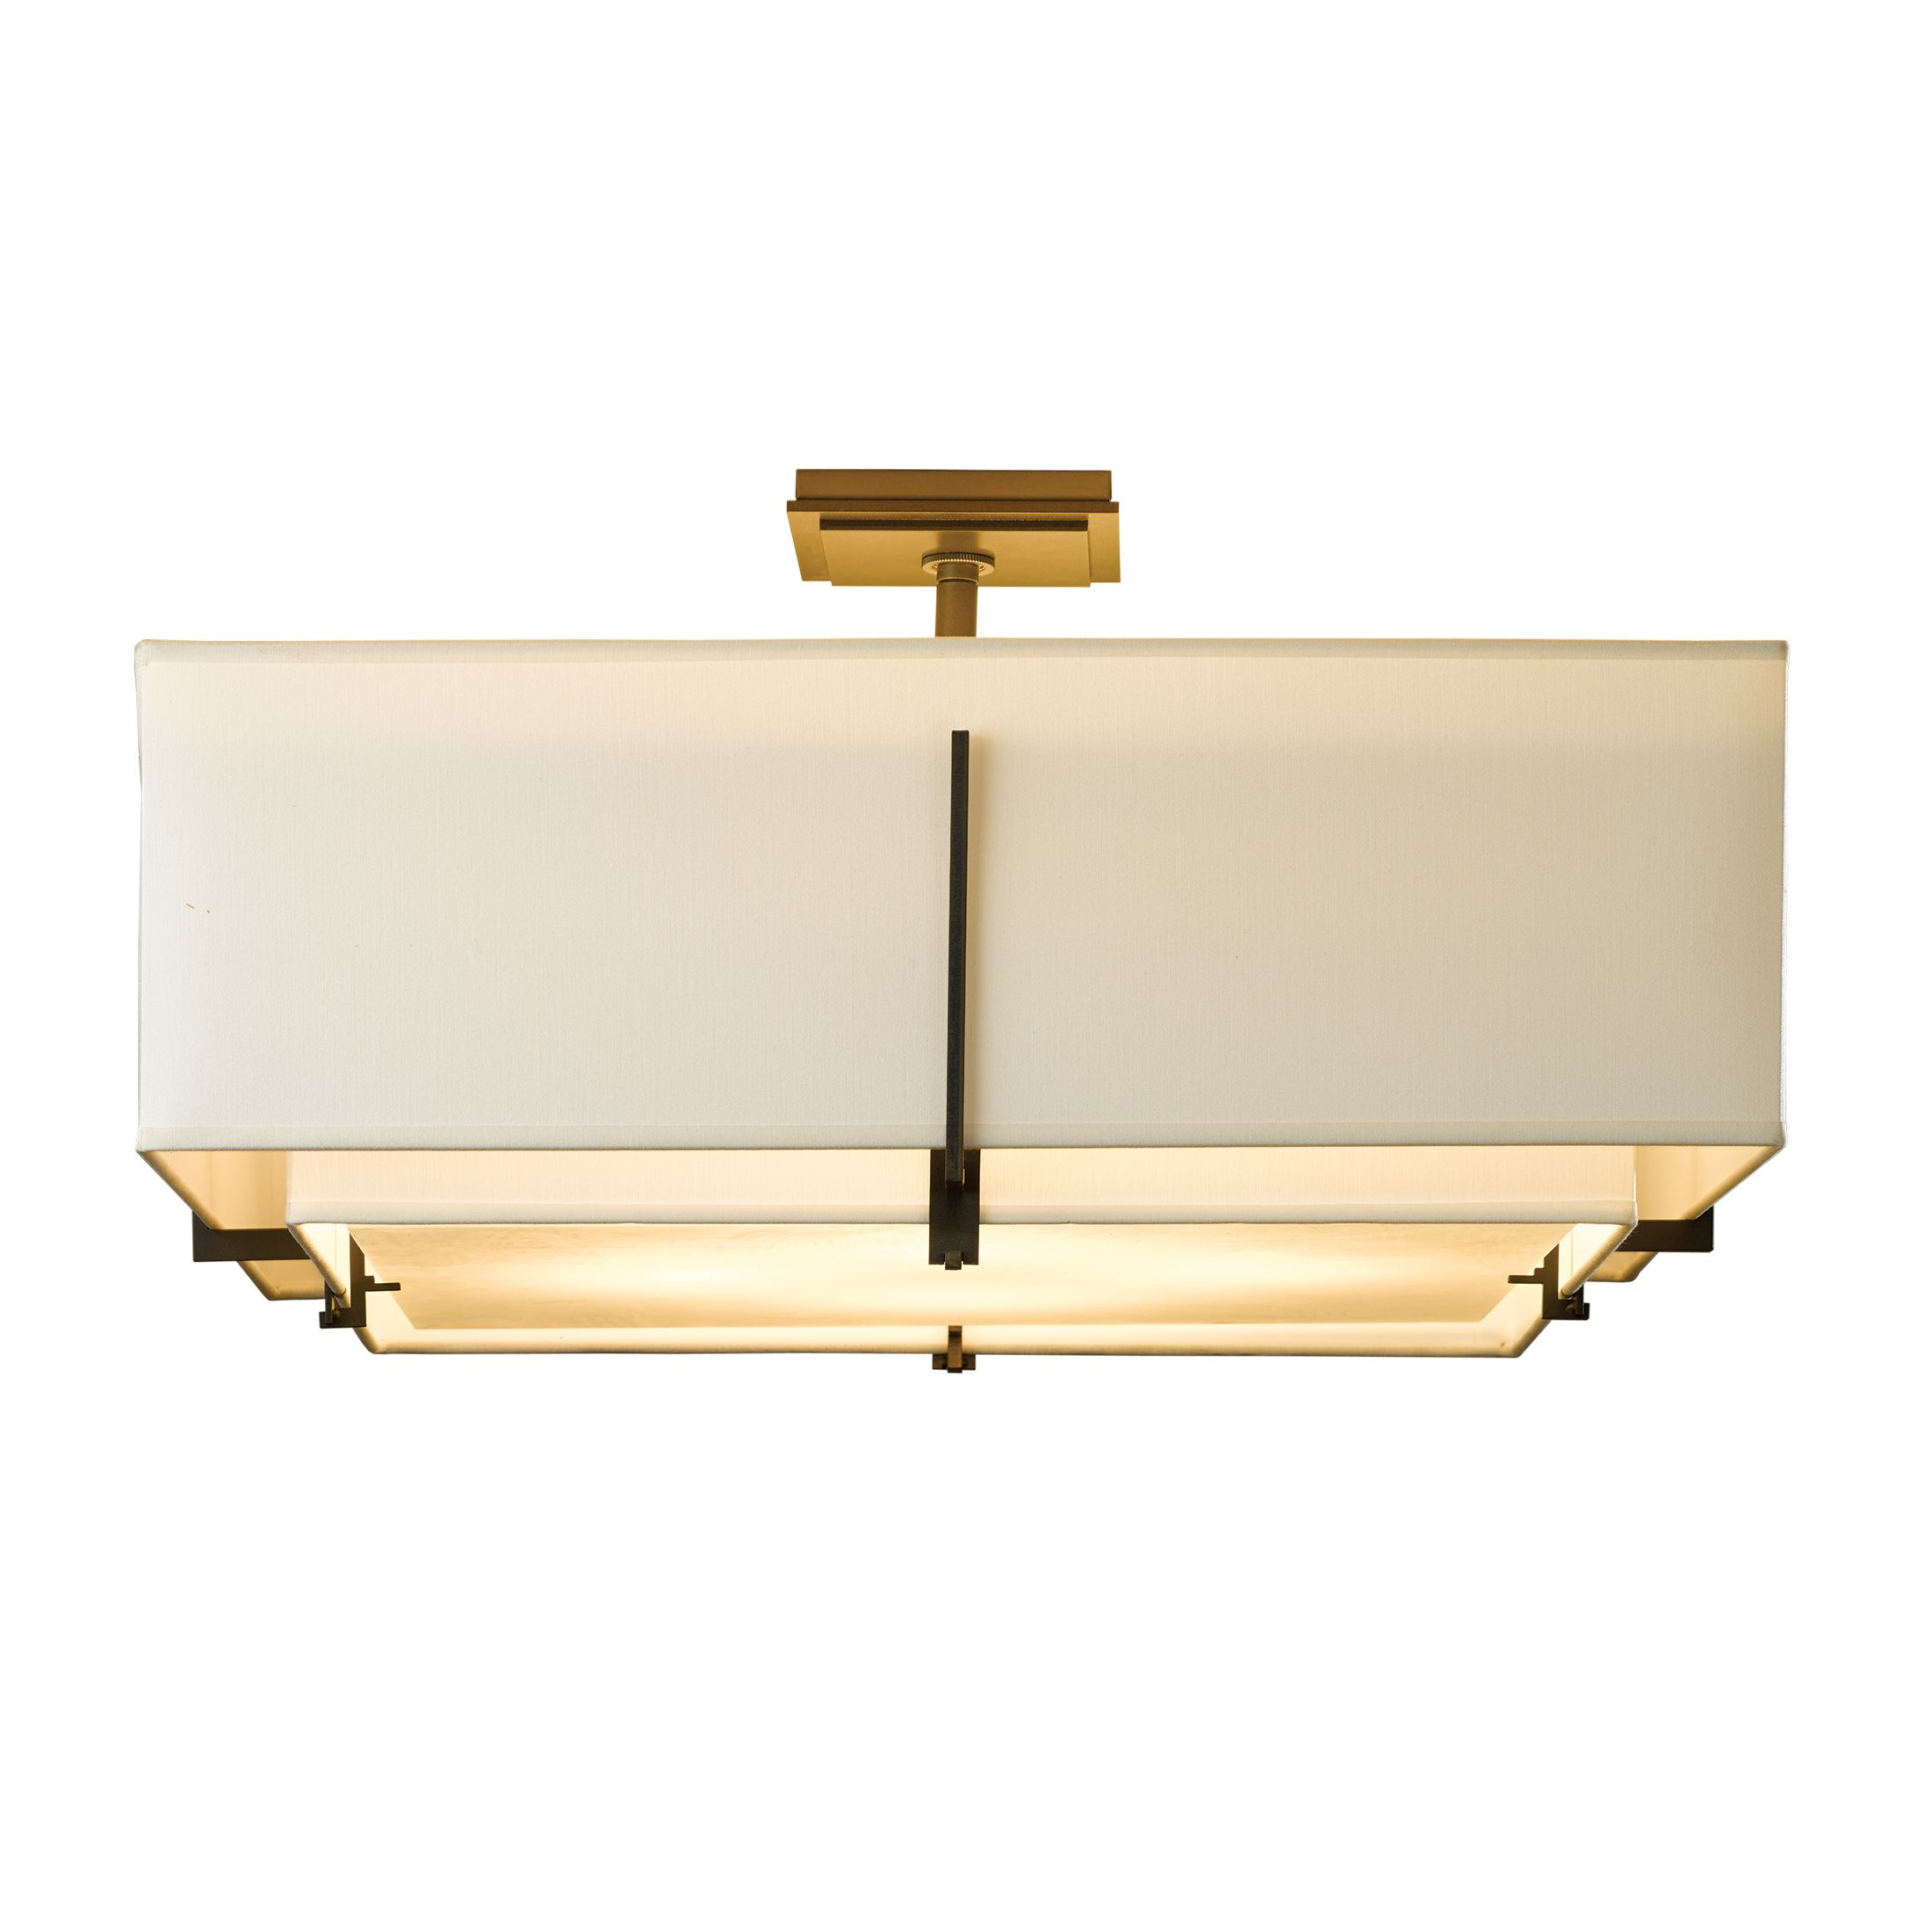 Hubbardton Forge Twilight: Exos Square Small Double Shade Semi-Flush